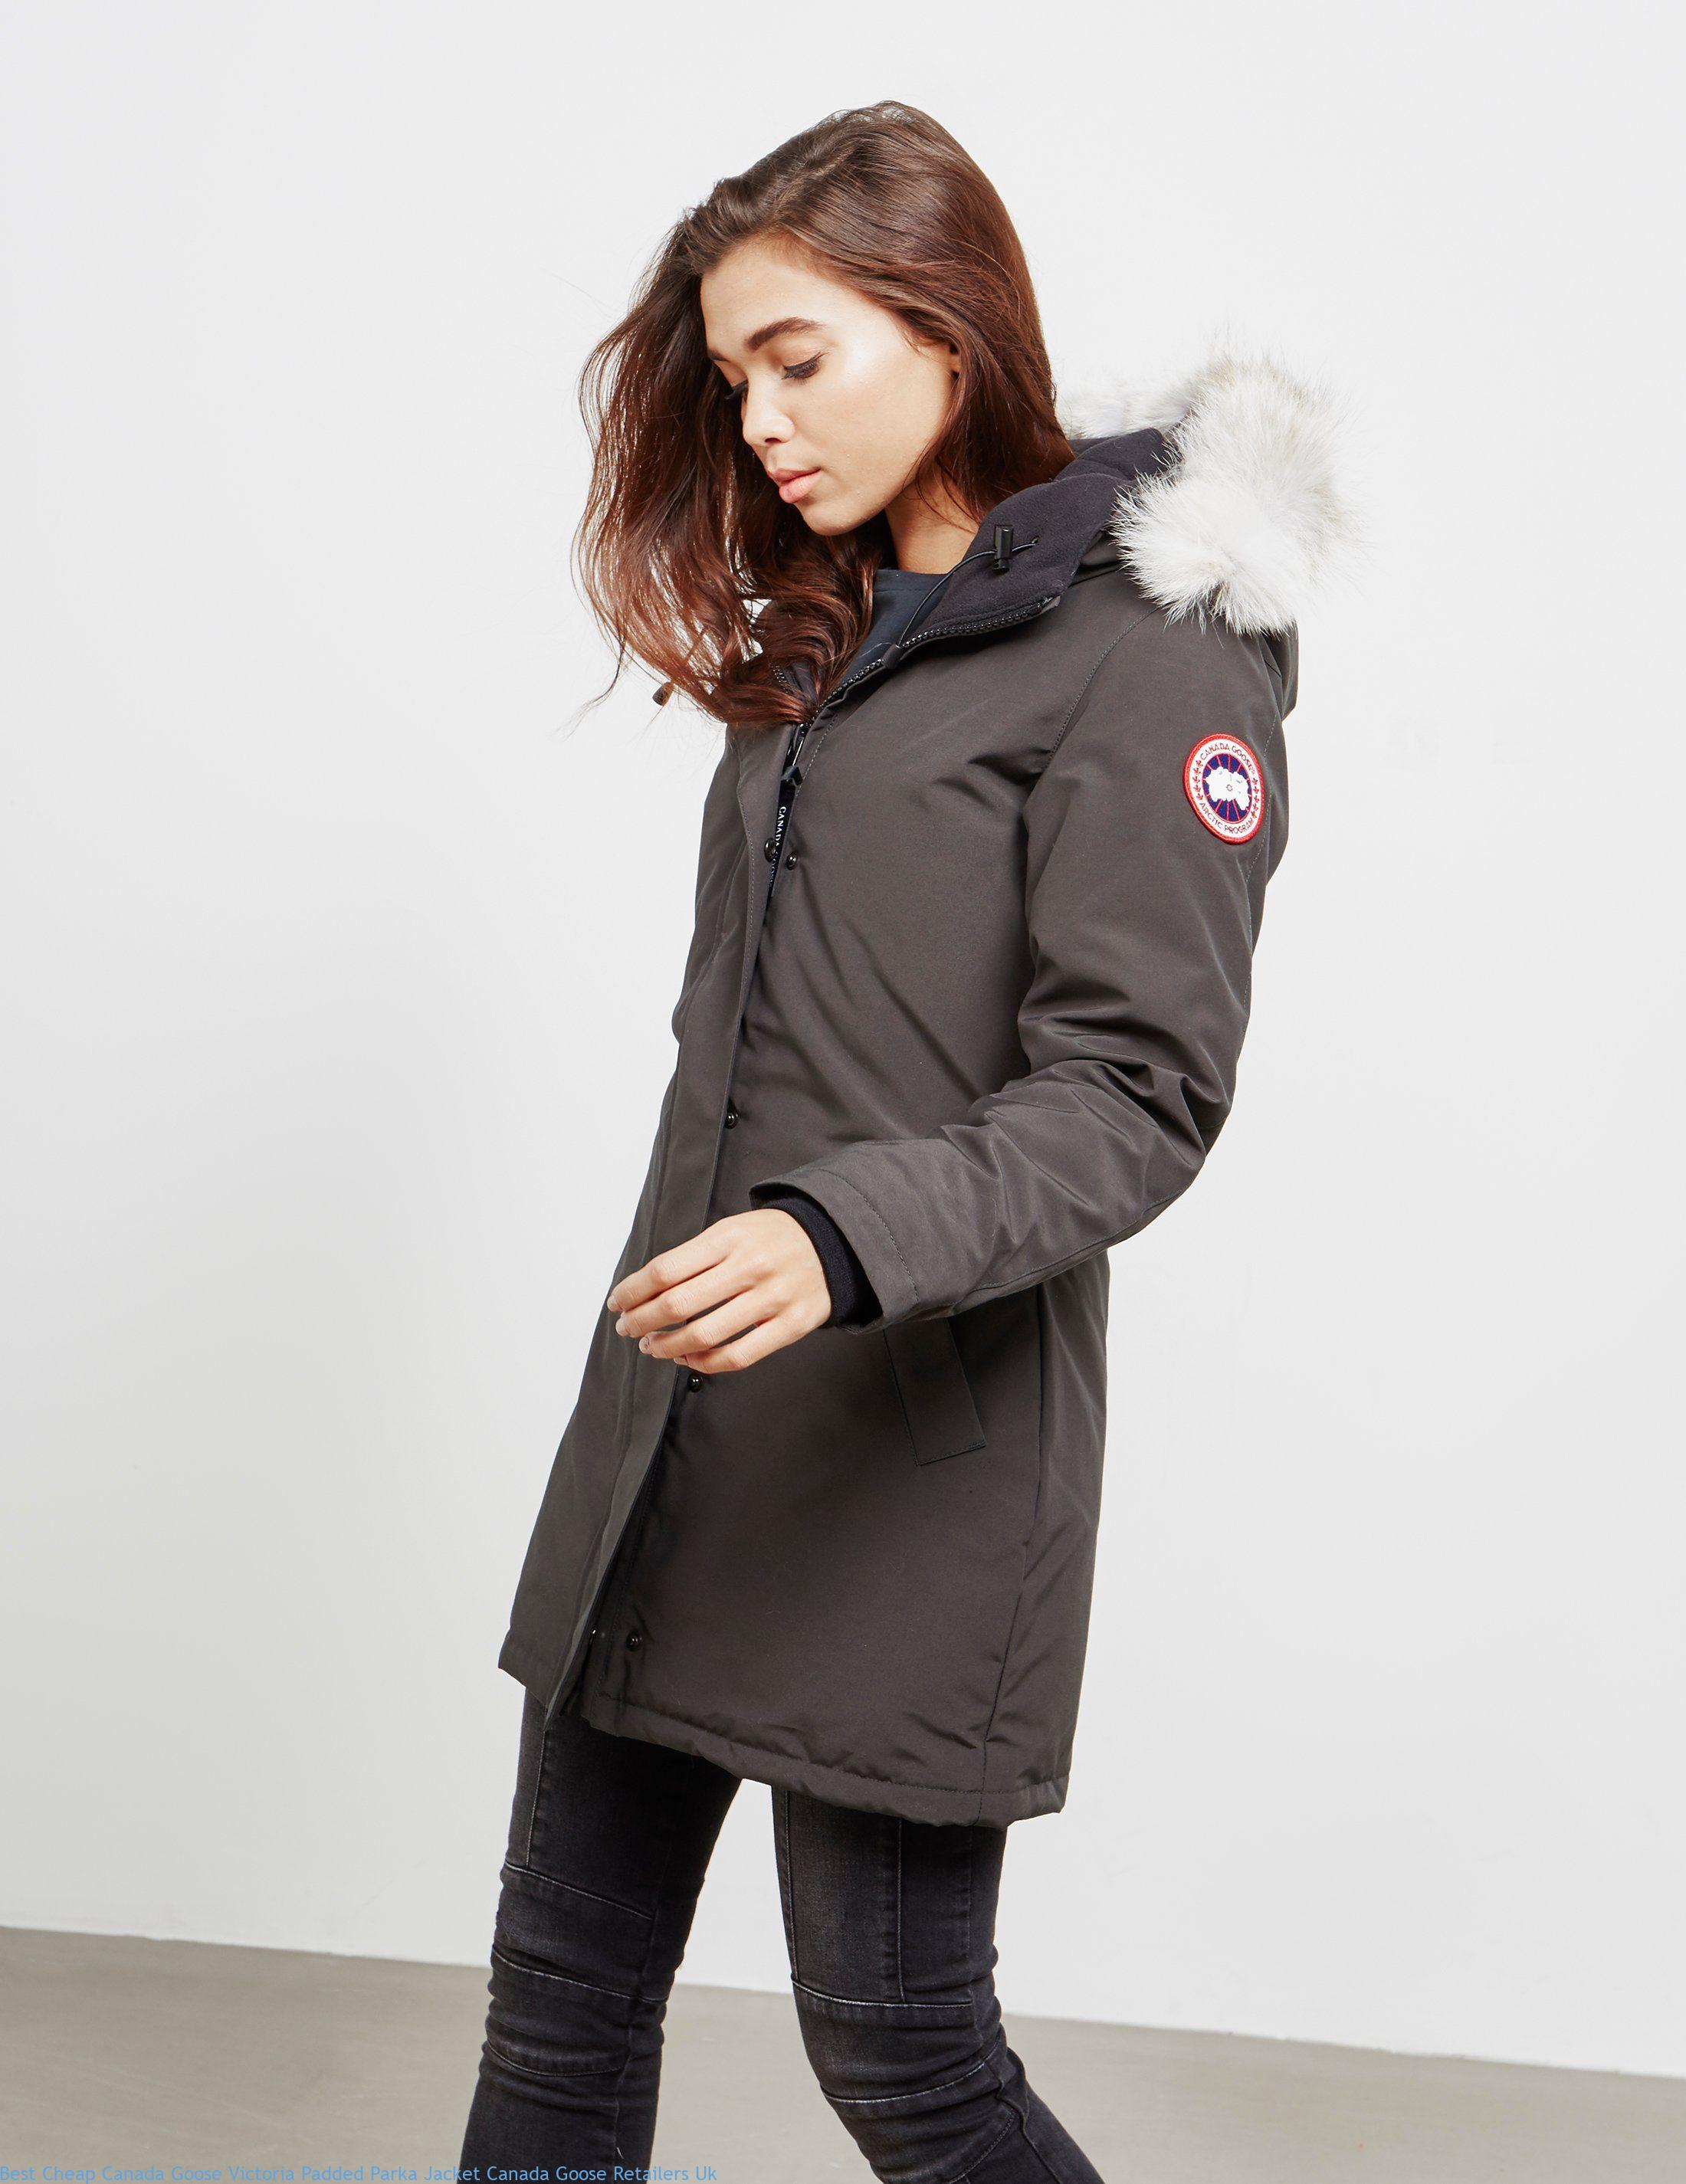 canada goose brown jacket